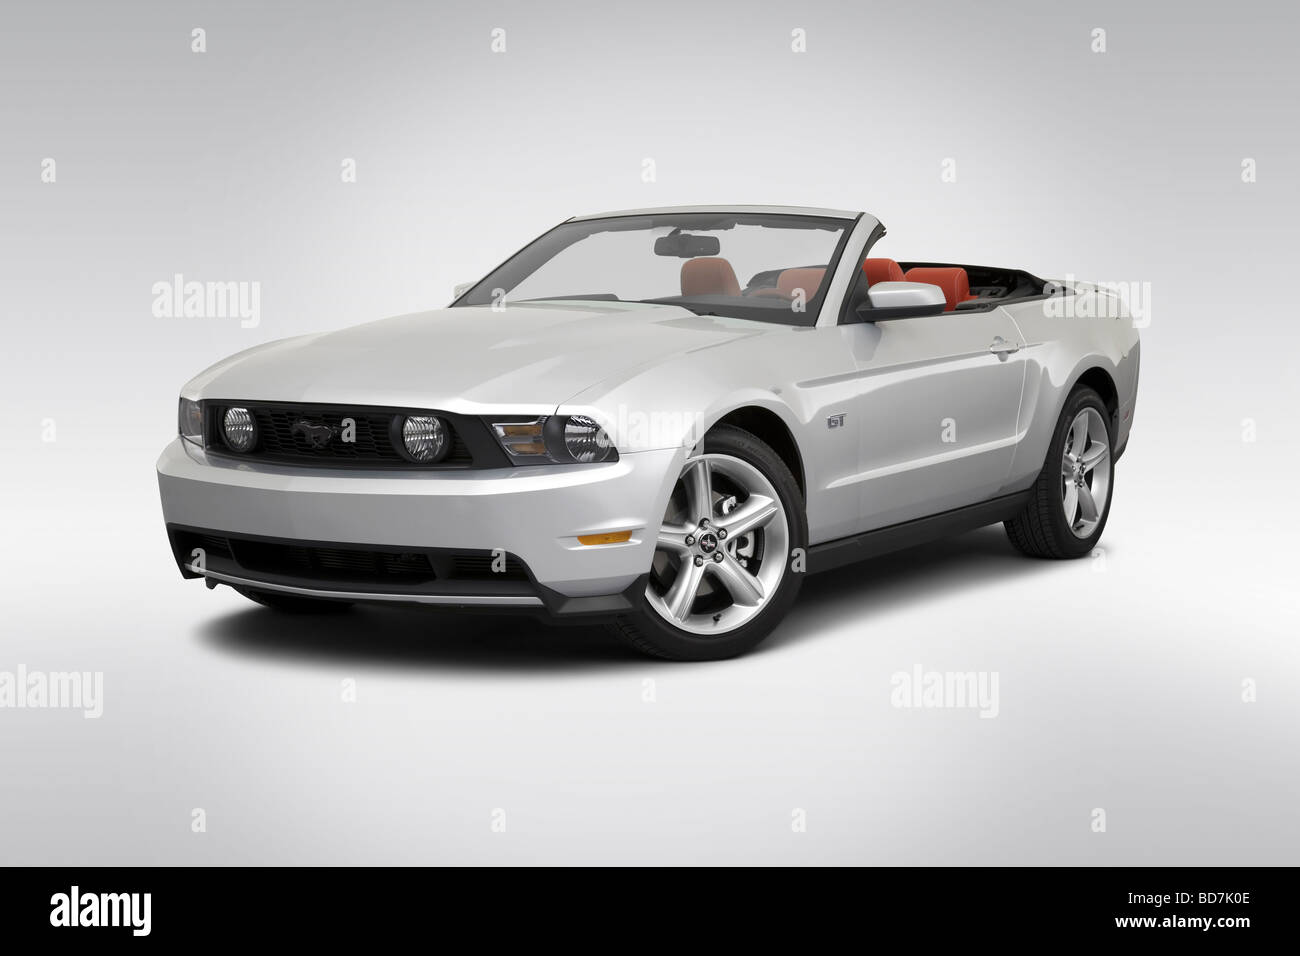 Mustang Gt Stock Photos Images Alamy 1983 Ford Engine 2010 In Silver Front Angle View Image